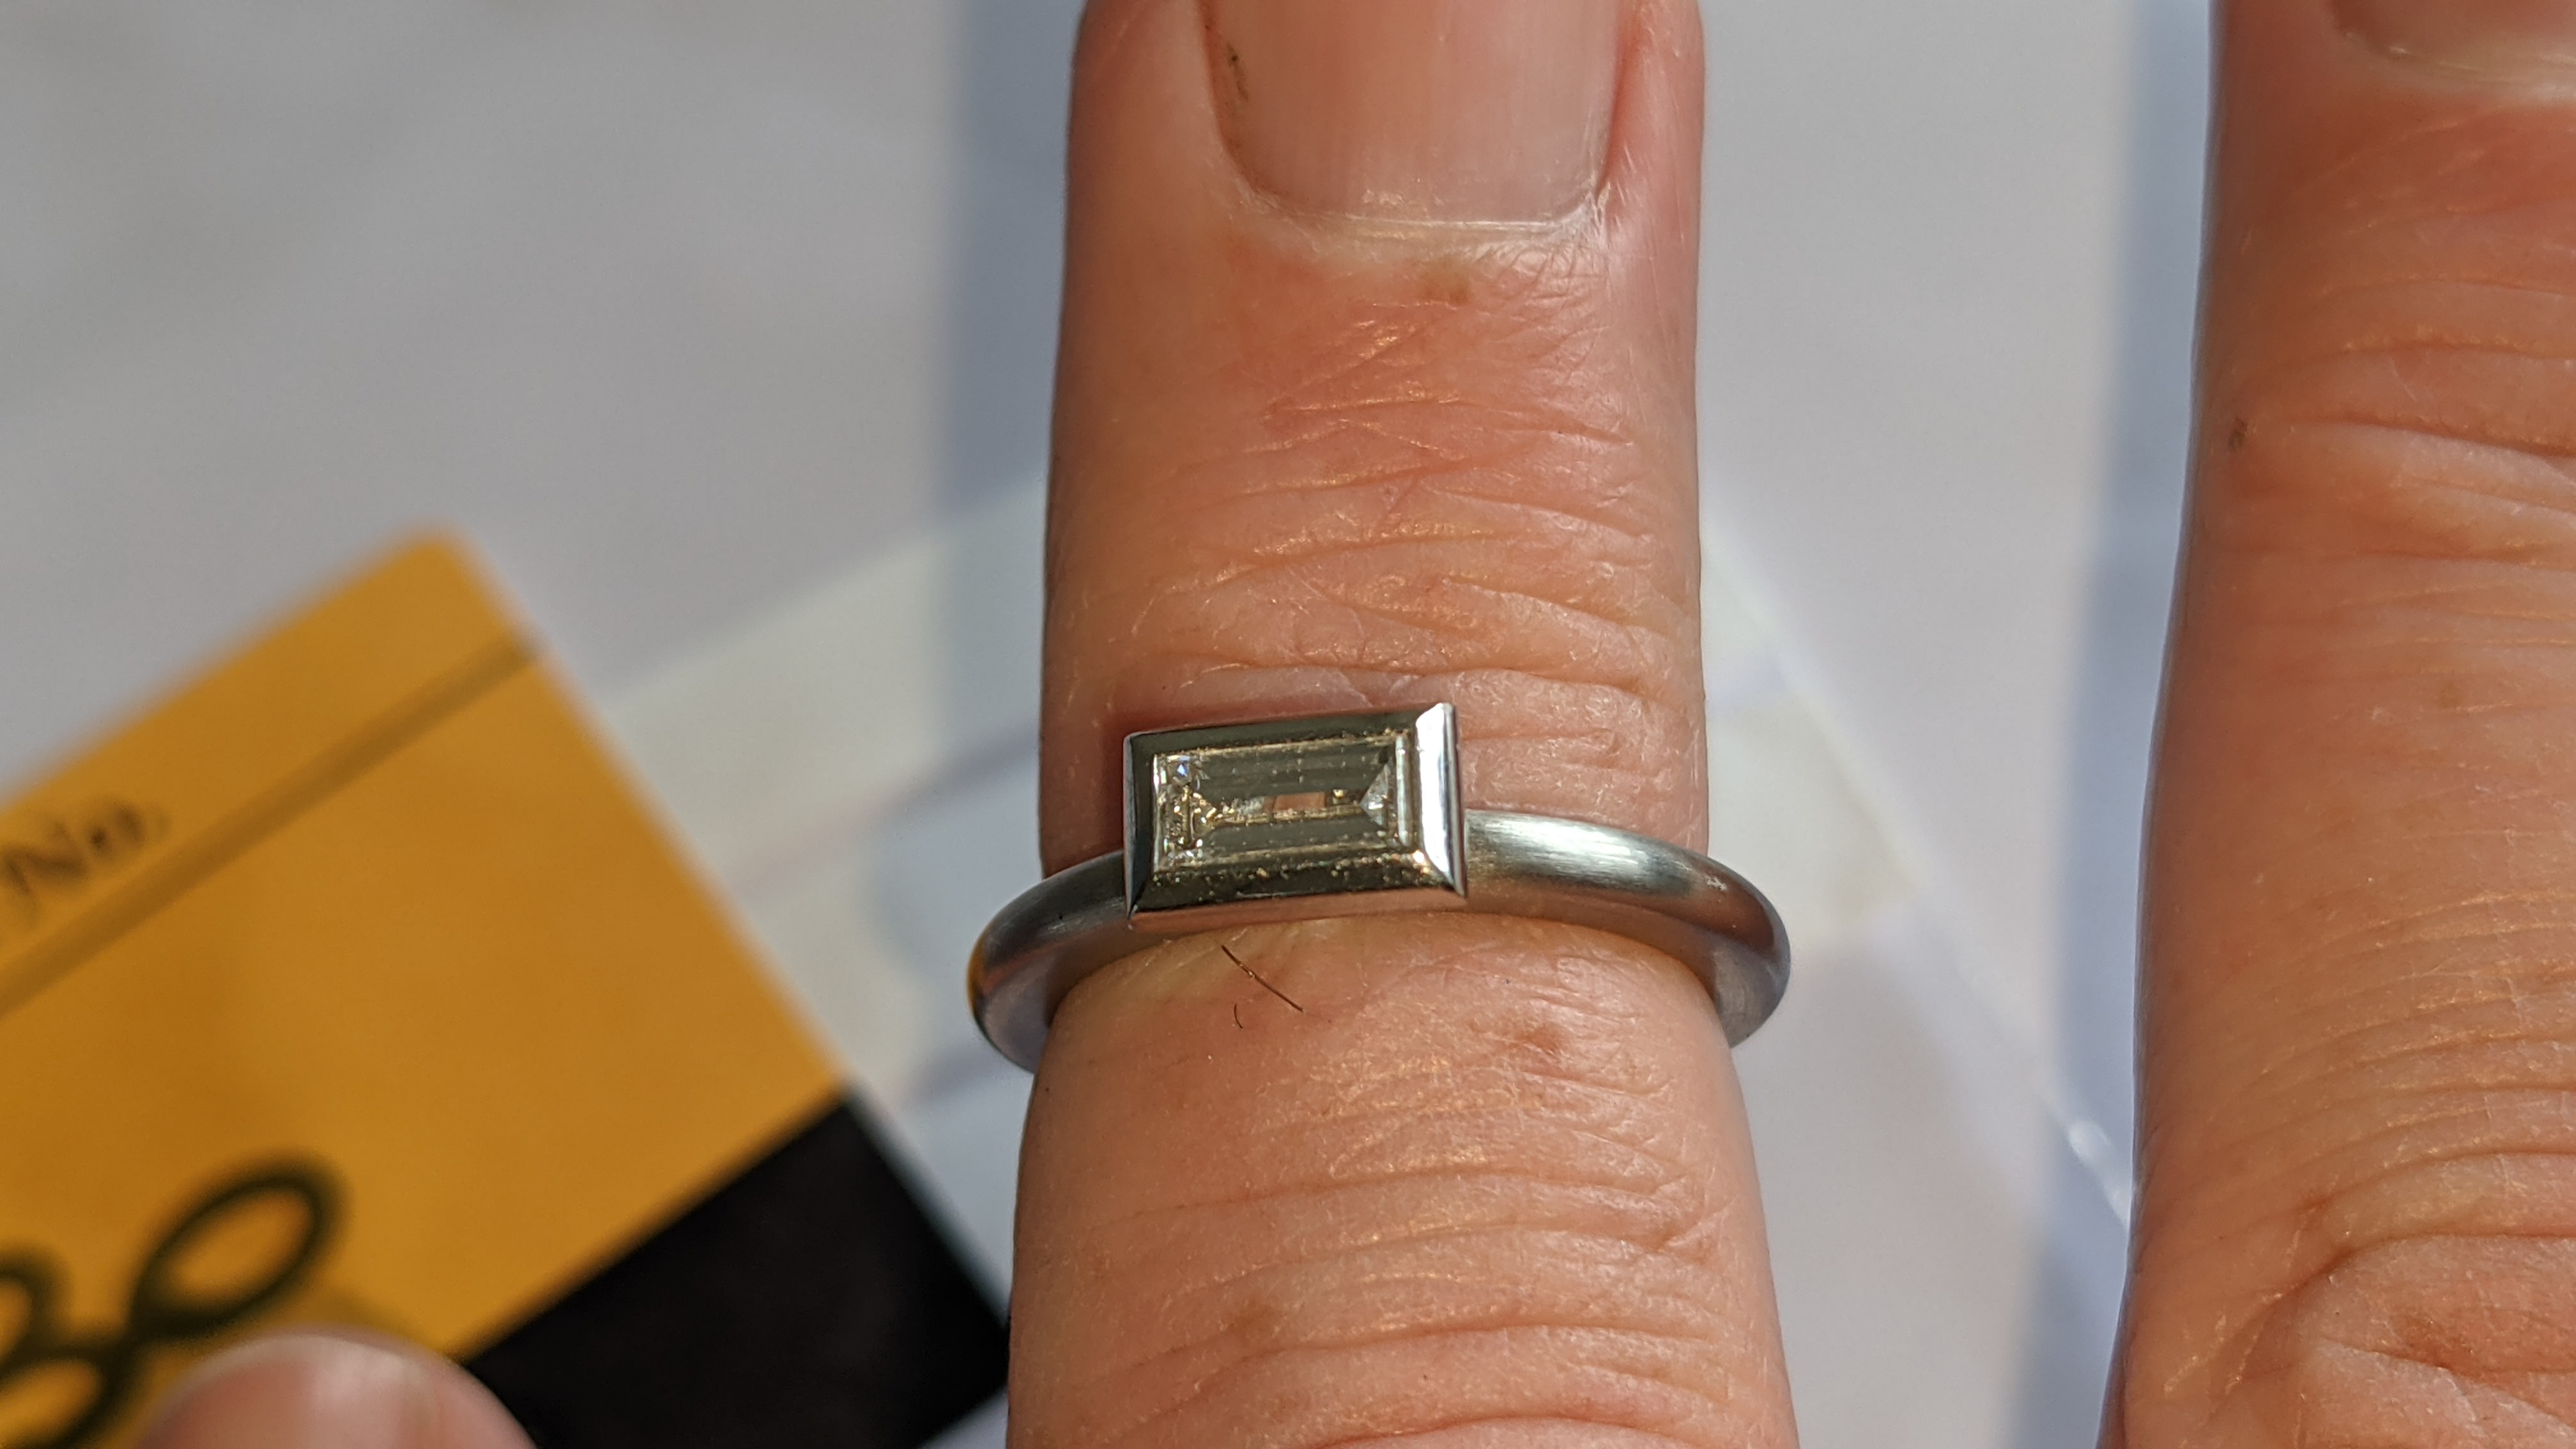 Modern platinum 950 & diamond ring with 0.42ct centrally mounted stone. RRP £4,677 - Image 16 of 18